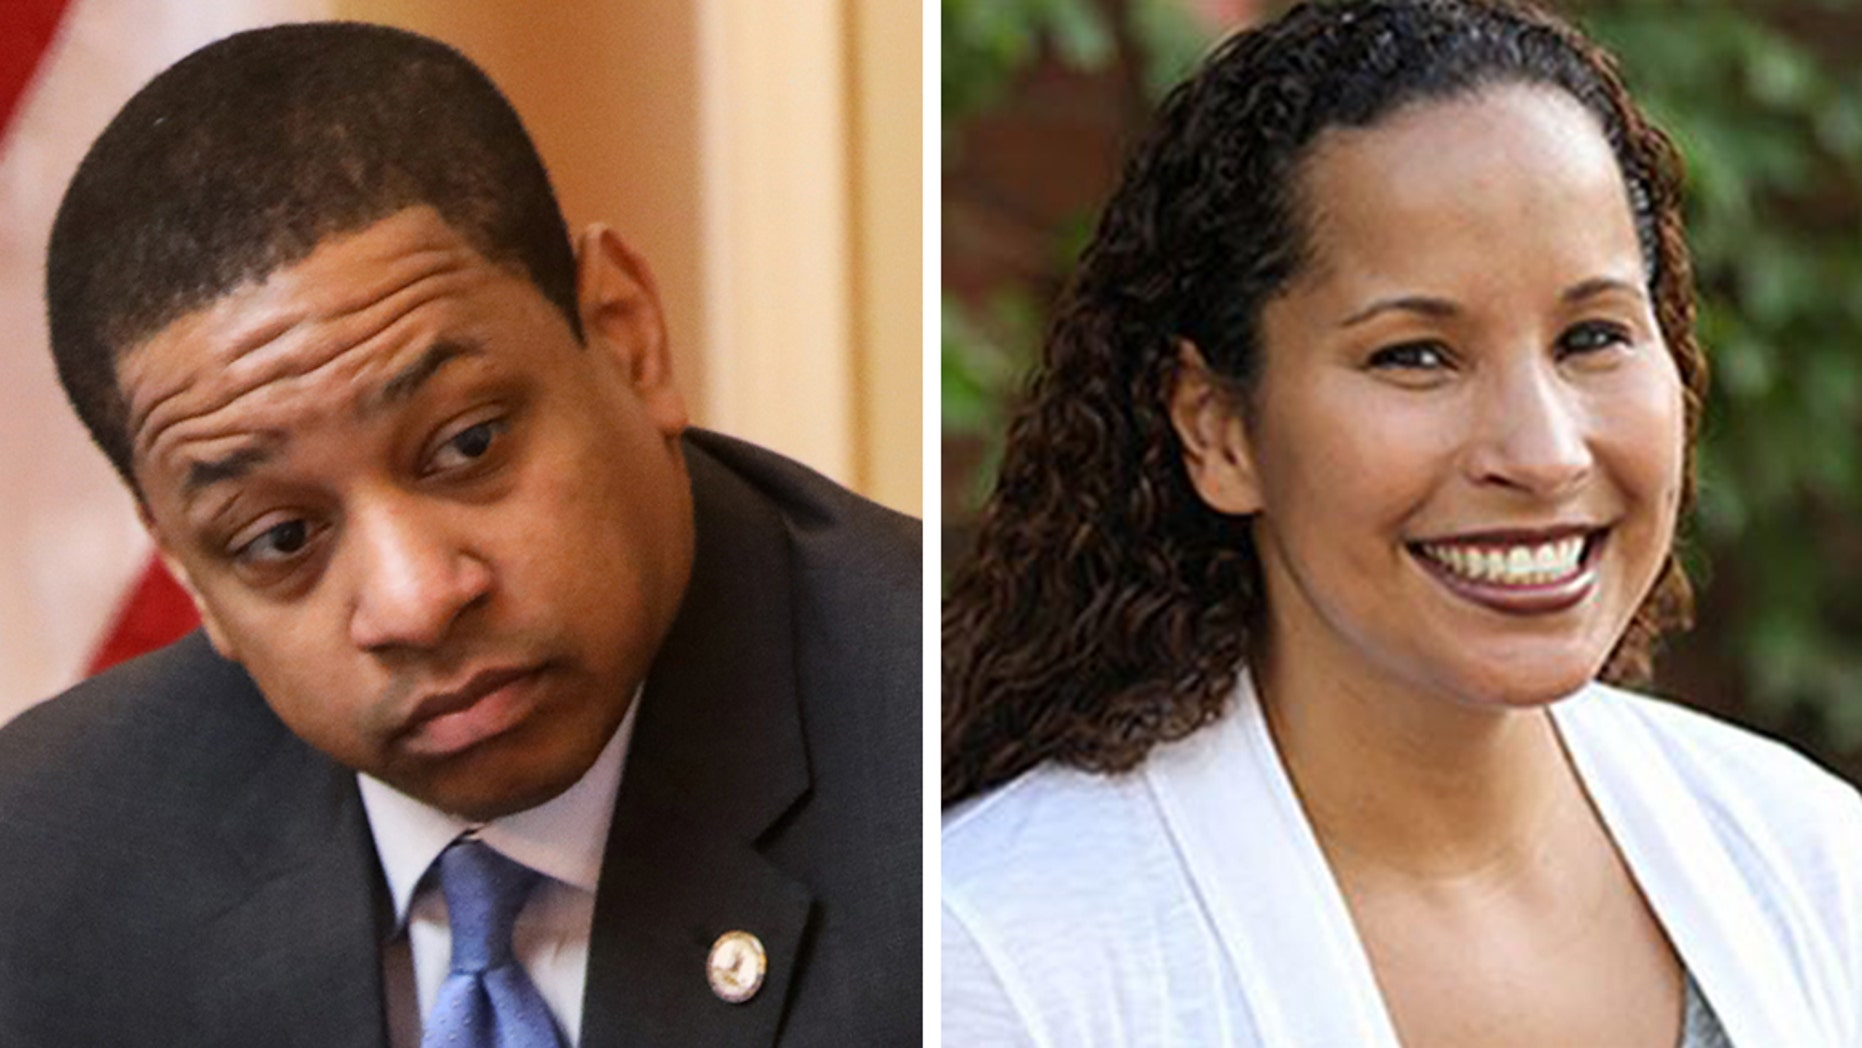 Virginia Lt. Gov. Justin Fairfax and Vanessa Tyson